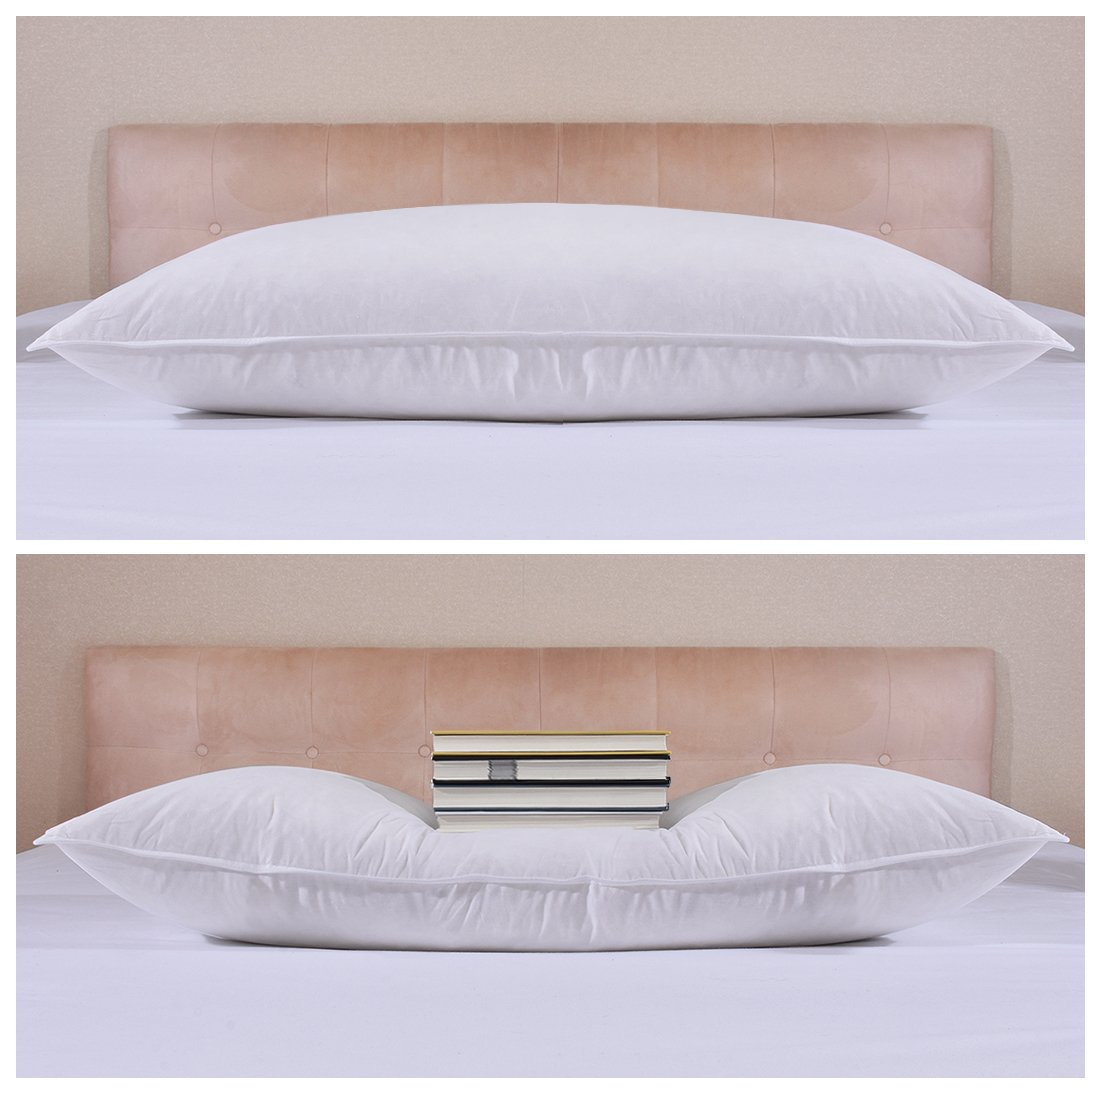 Gusset Pack of 2, Breathable Hypoallergenic BESC Standard//Queen Size Feather and Down Bed Sleeping Pillow 100/% Egyptian Cotton Cover 26x18 inch